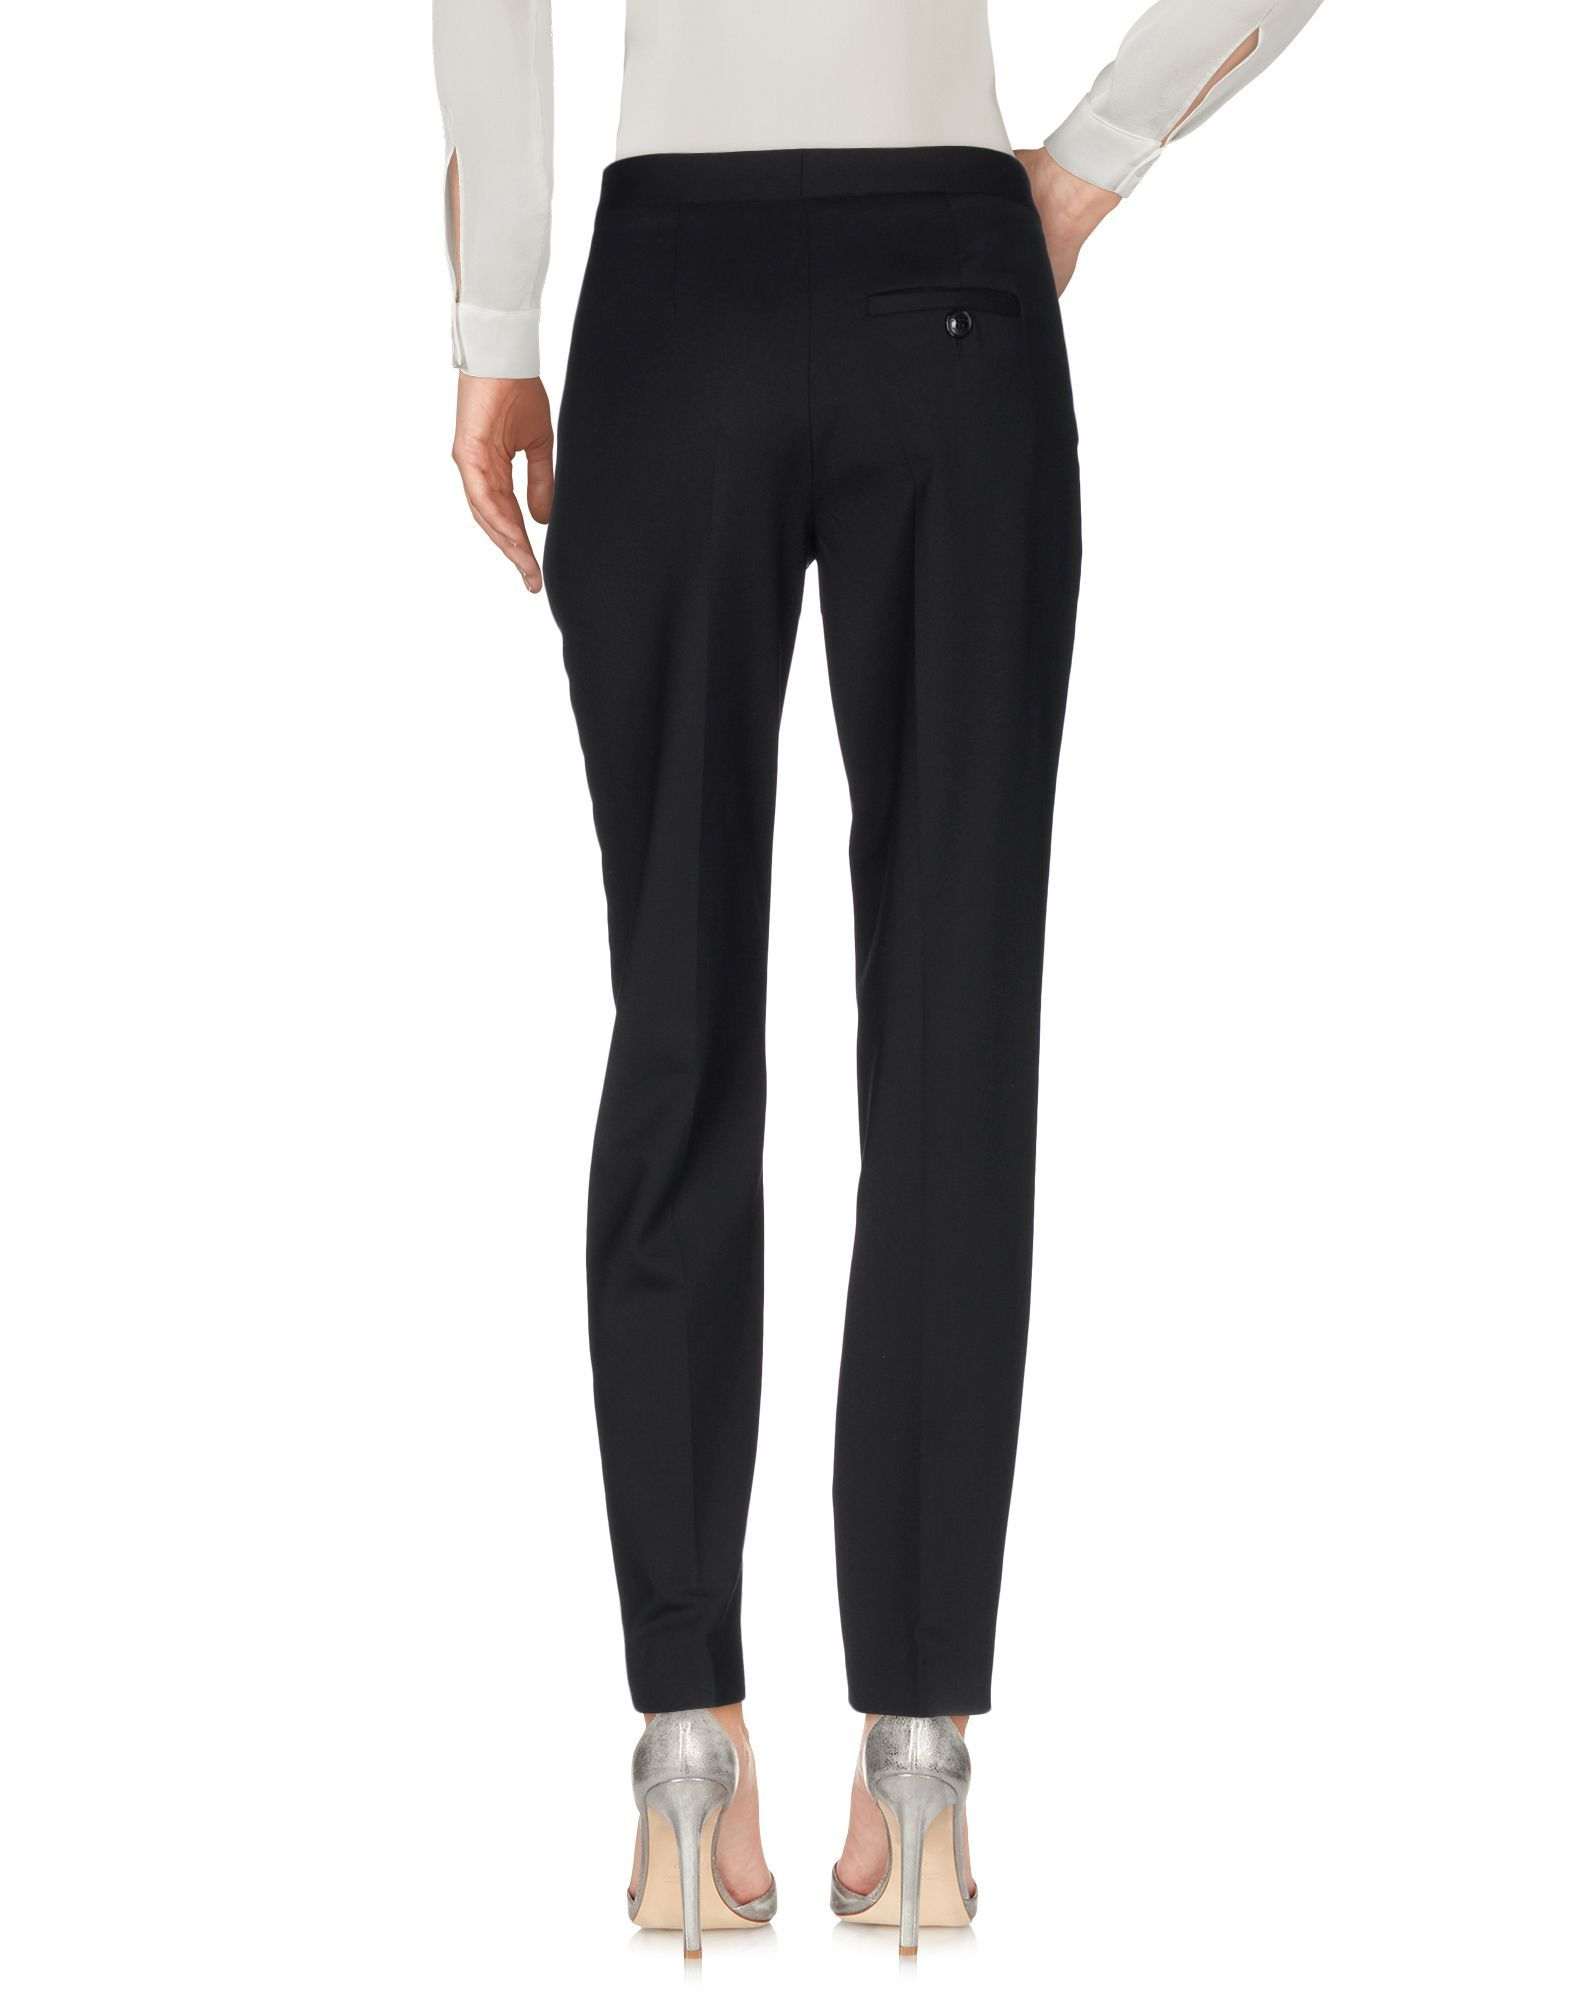 Boutique Moschino Black Virgin Wool Trousers